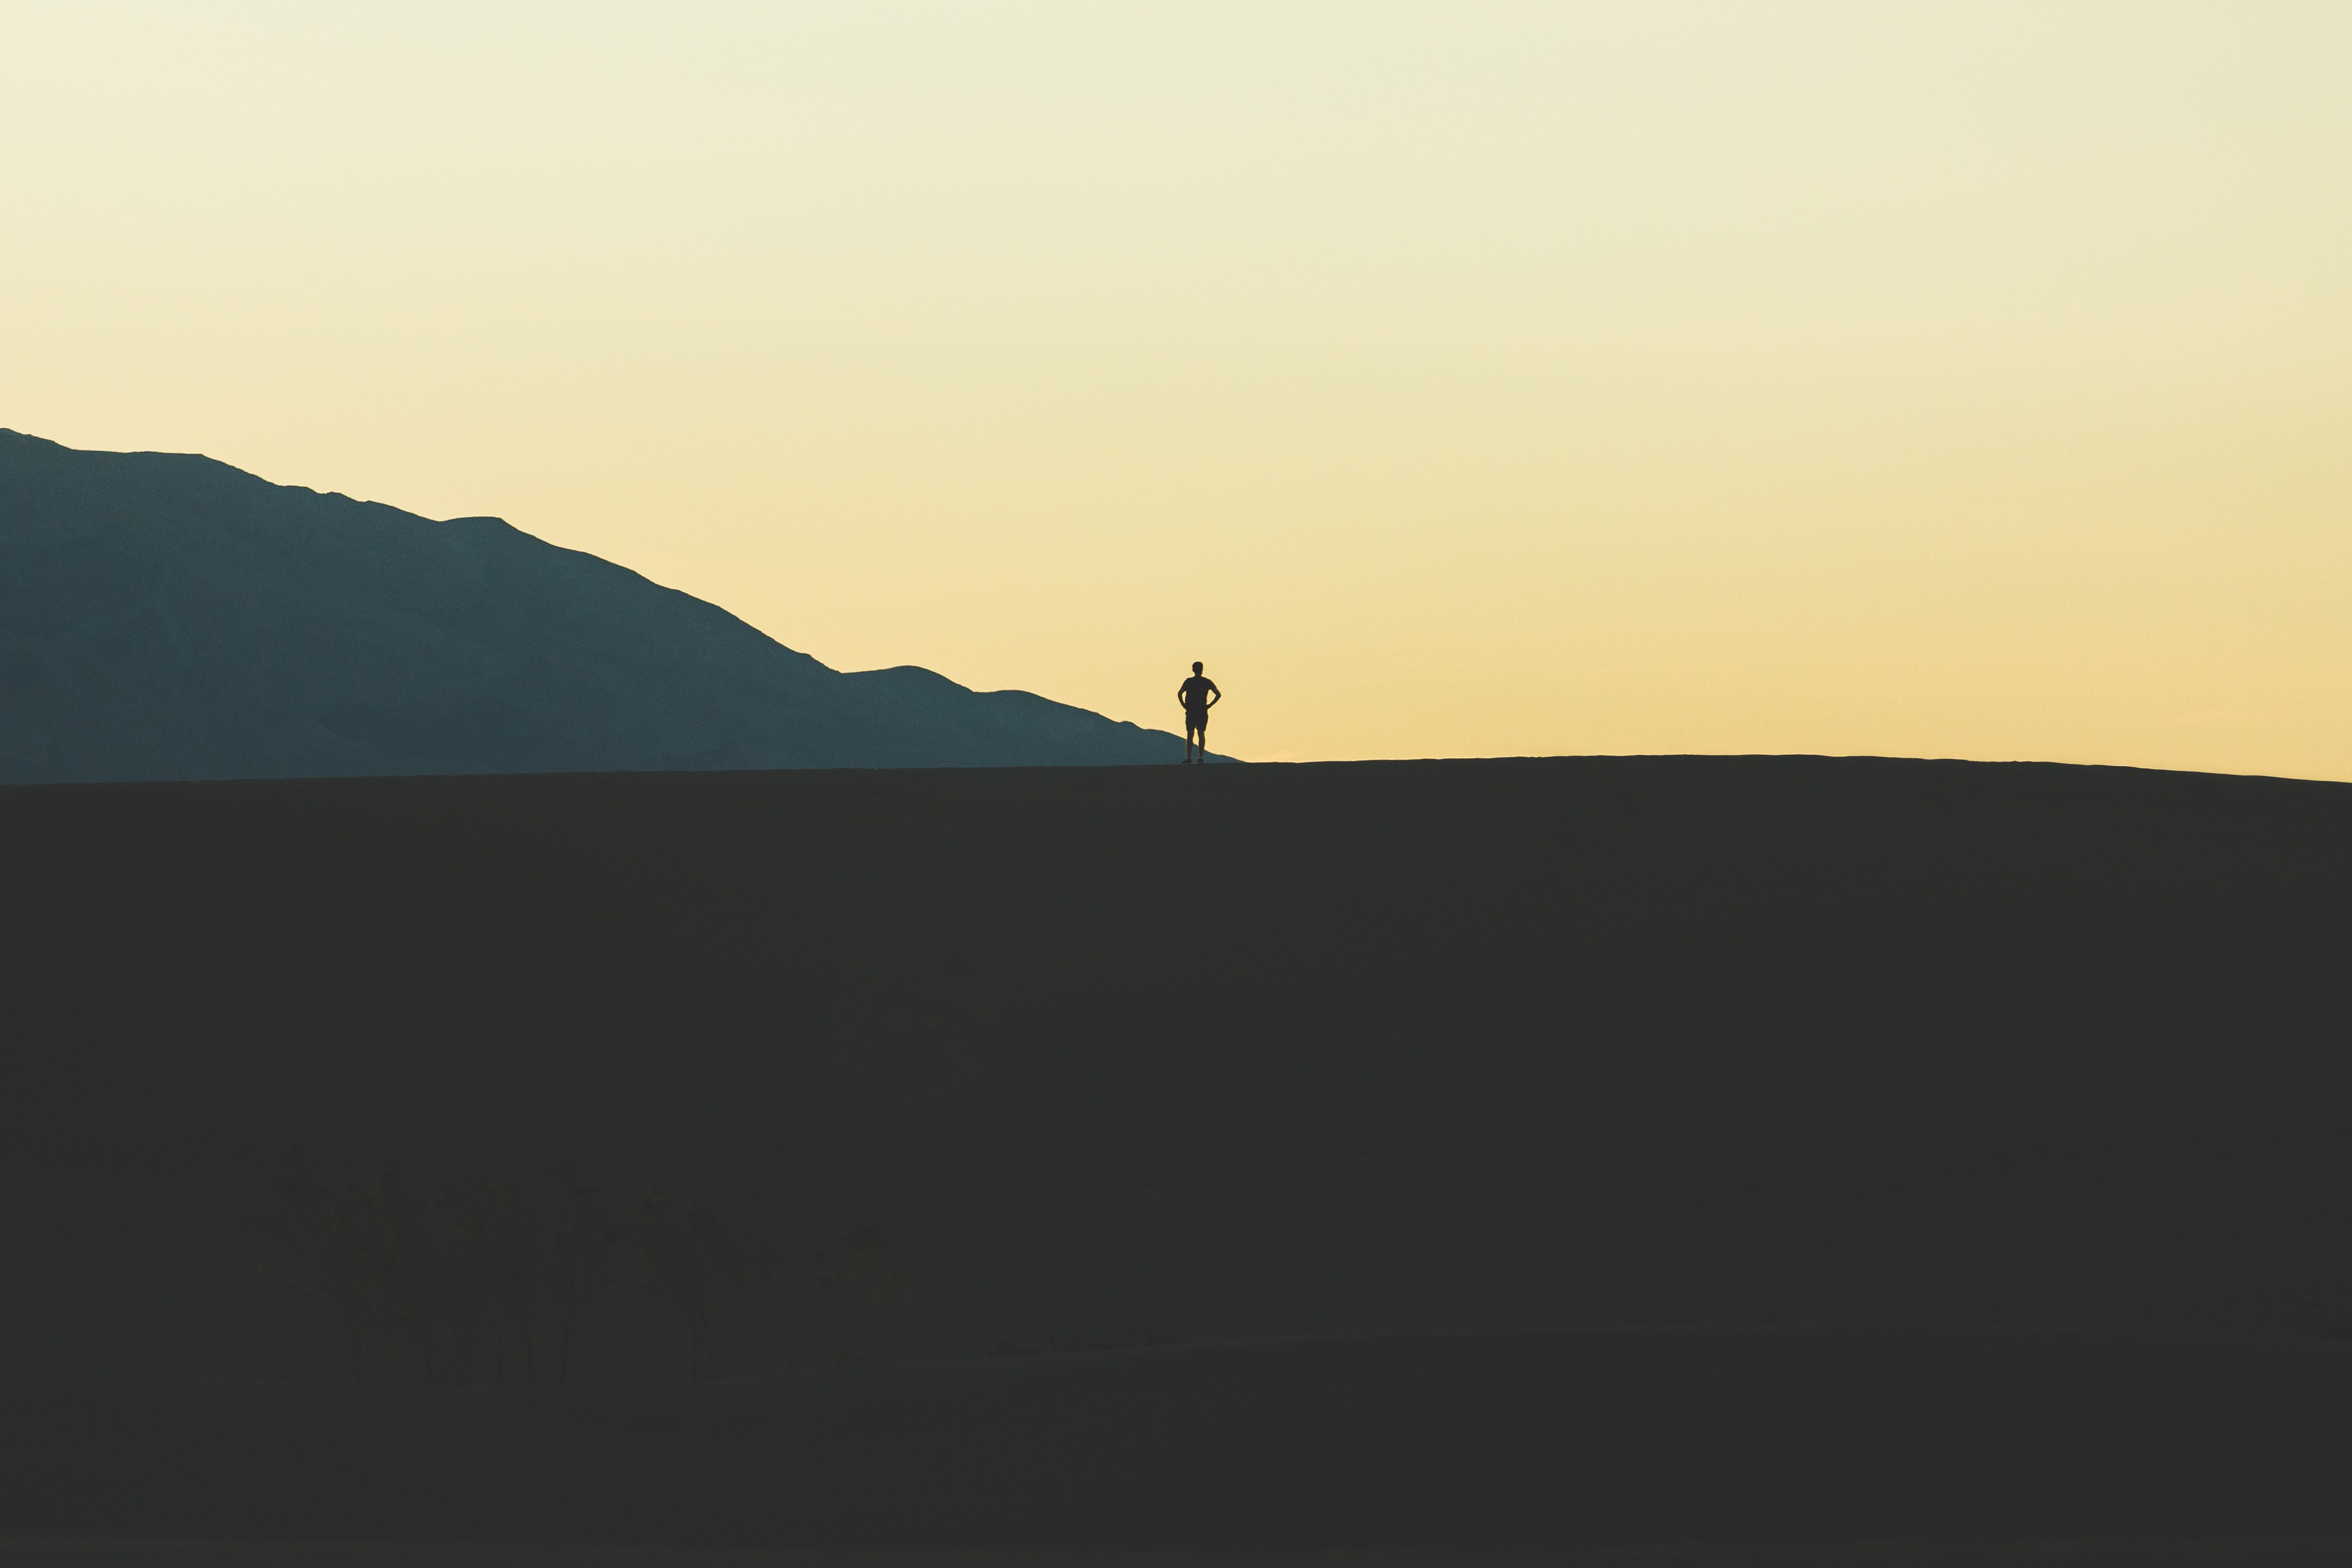 A person's silhoutte against the orange sky on a sand dune at Death Valley National Park